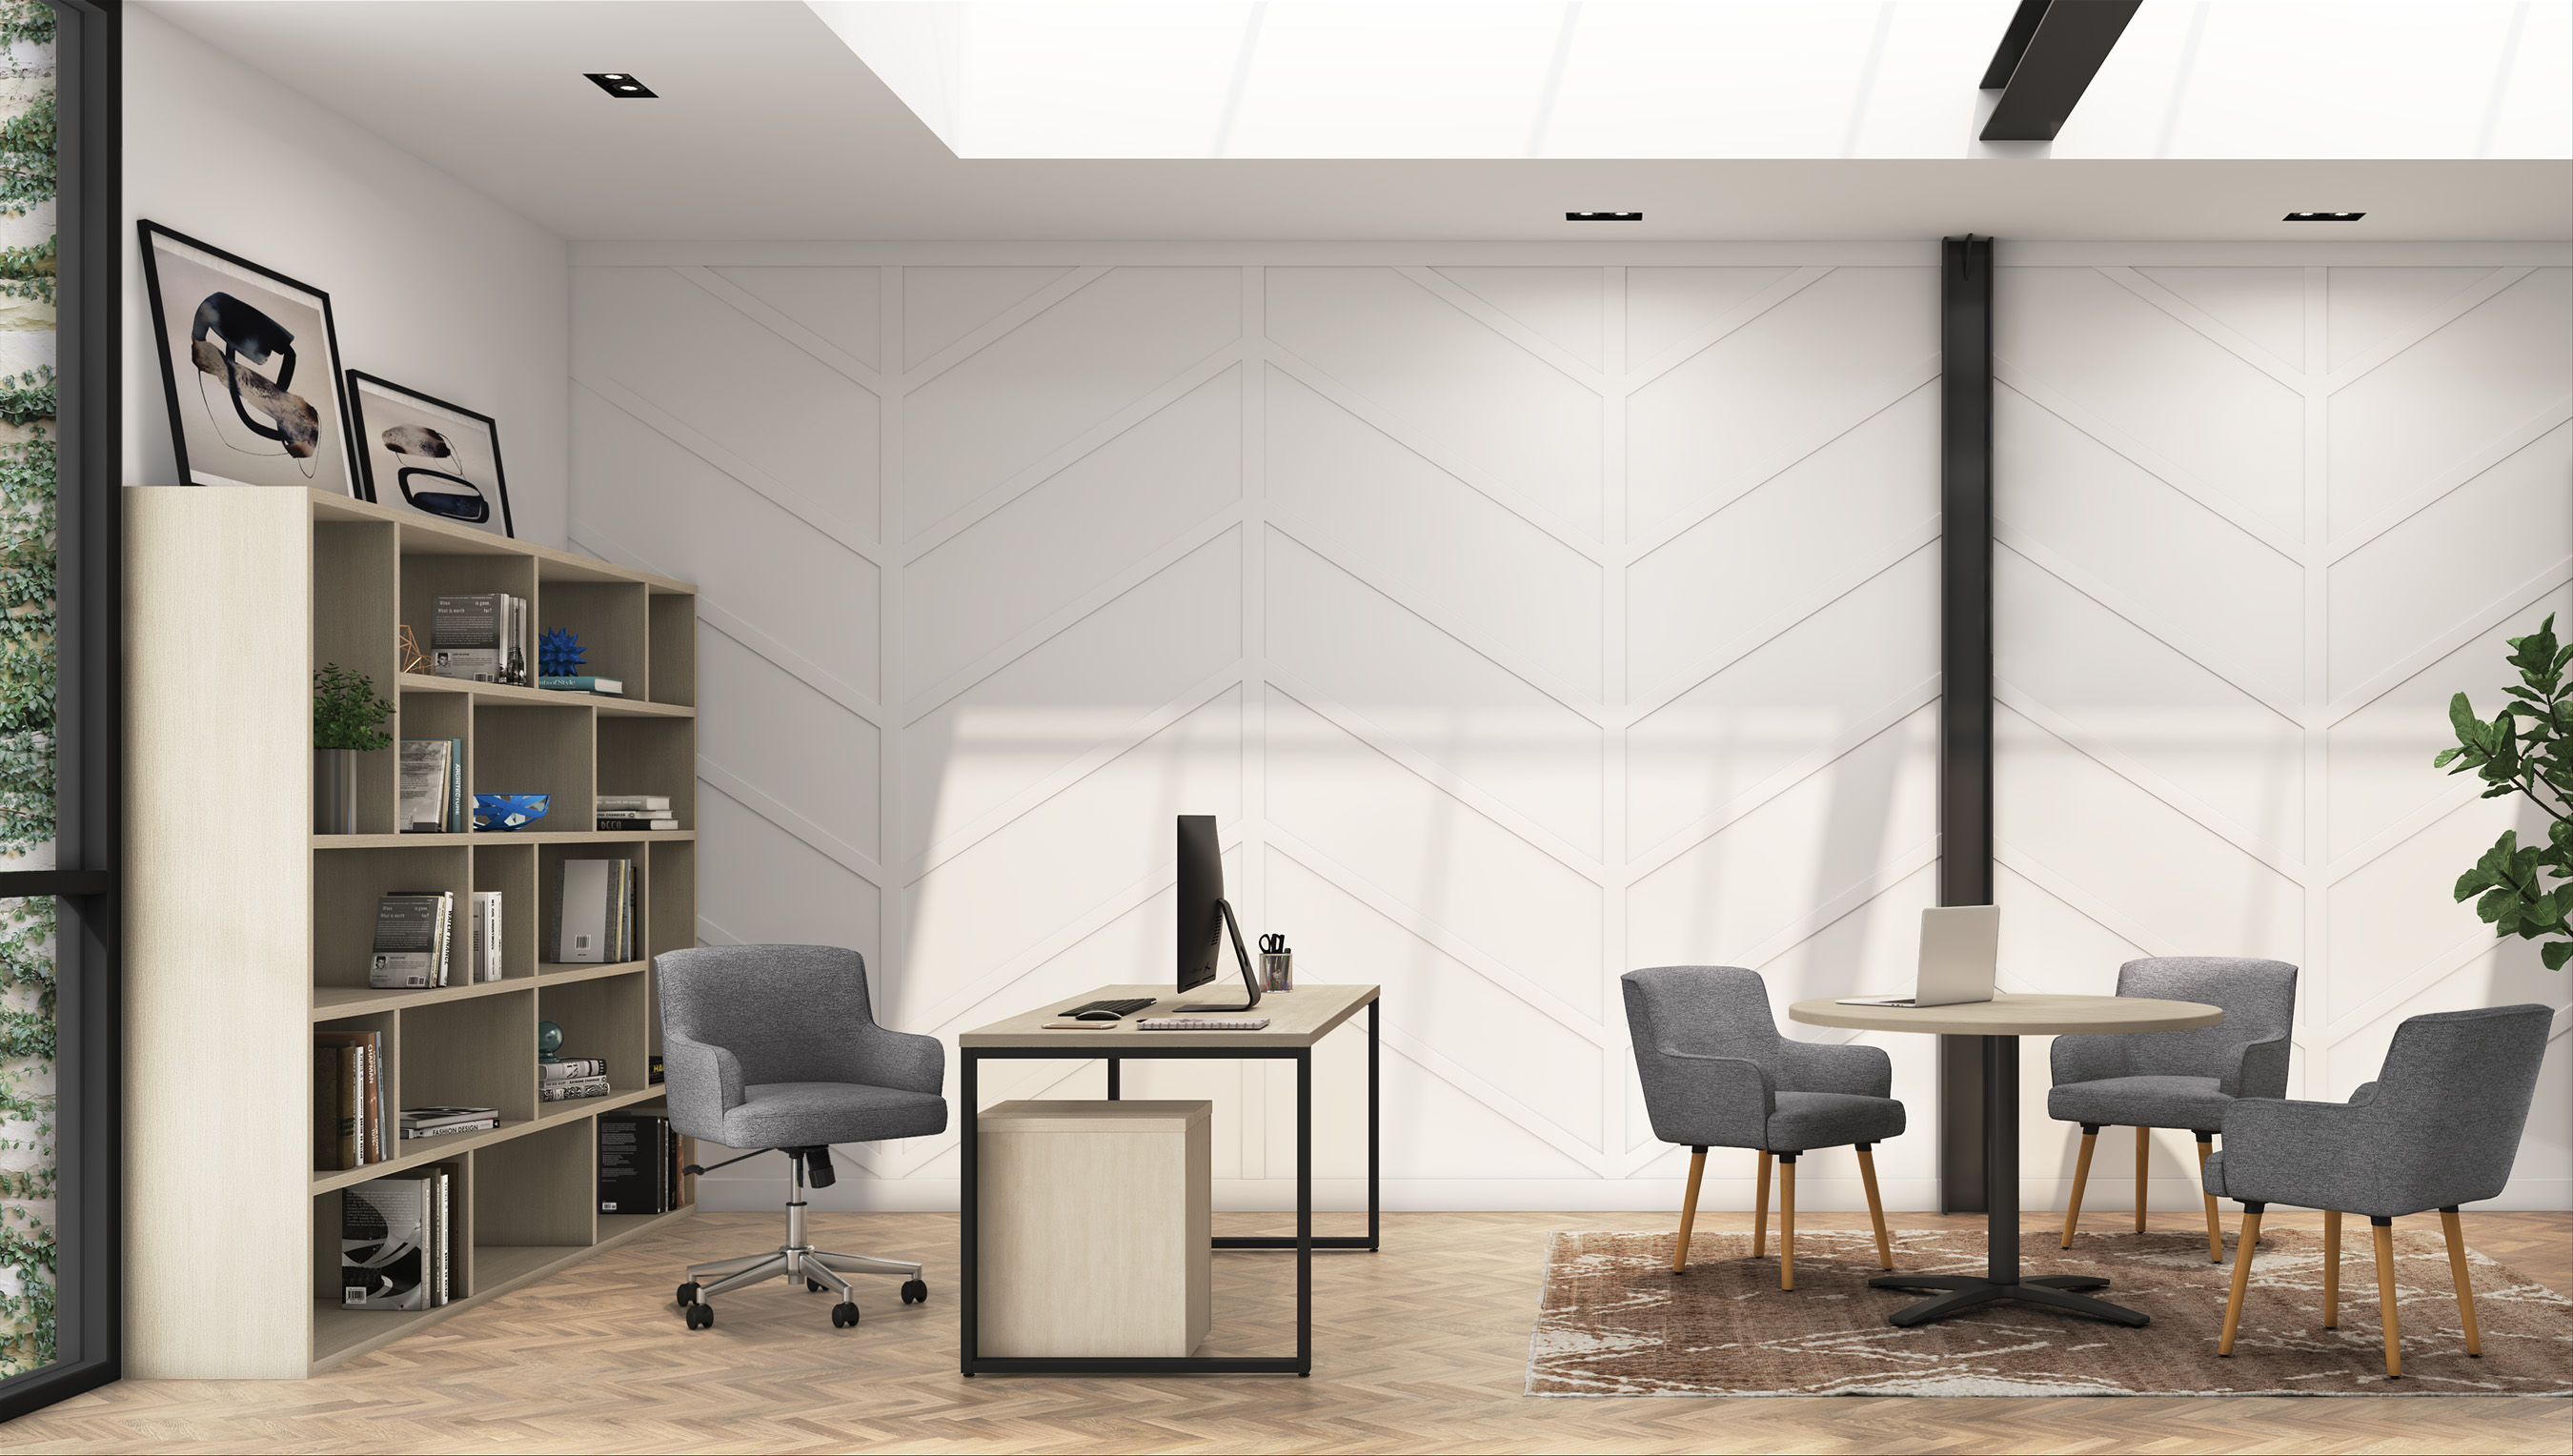 If you have the space for a designated home office space, explore the option of a traditional or modern office solution designed to ergonomically support you and the aesthetic of your home.